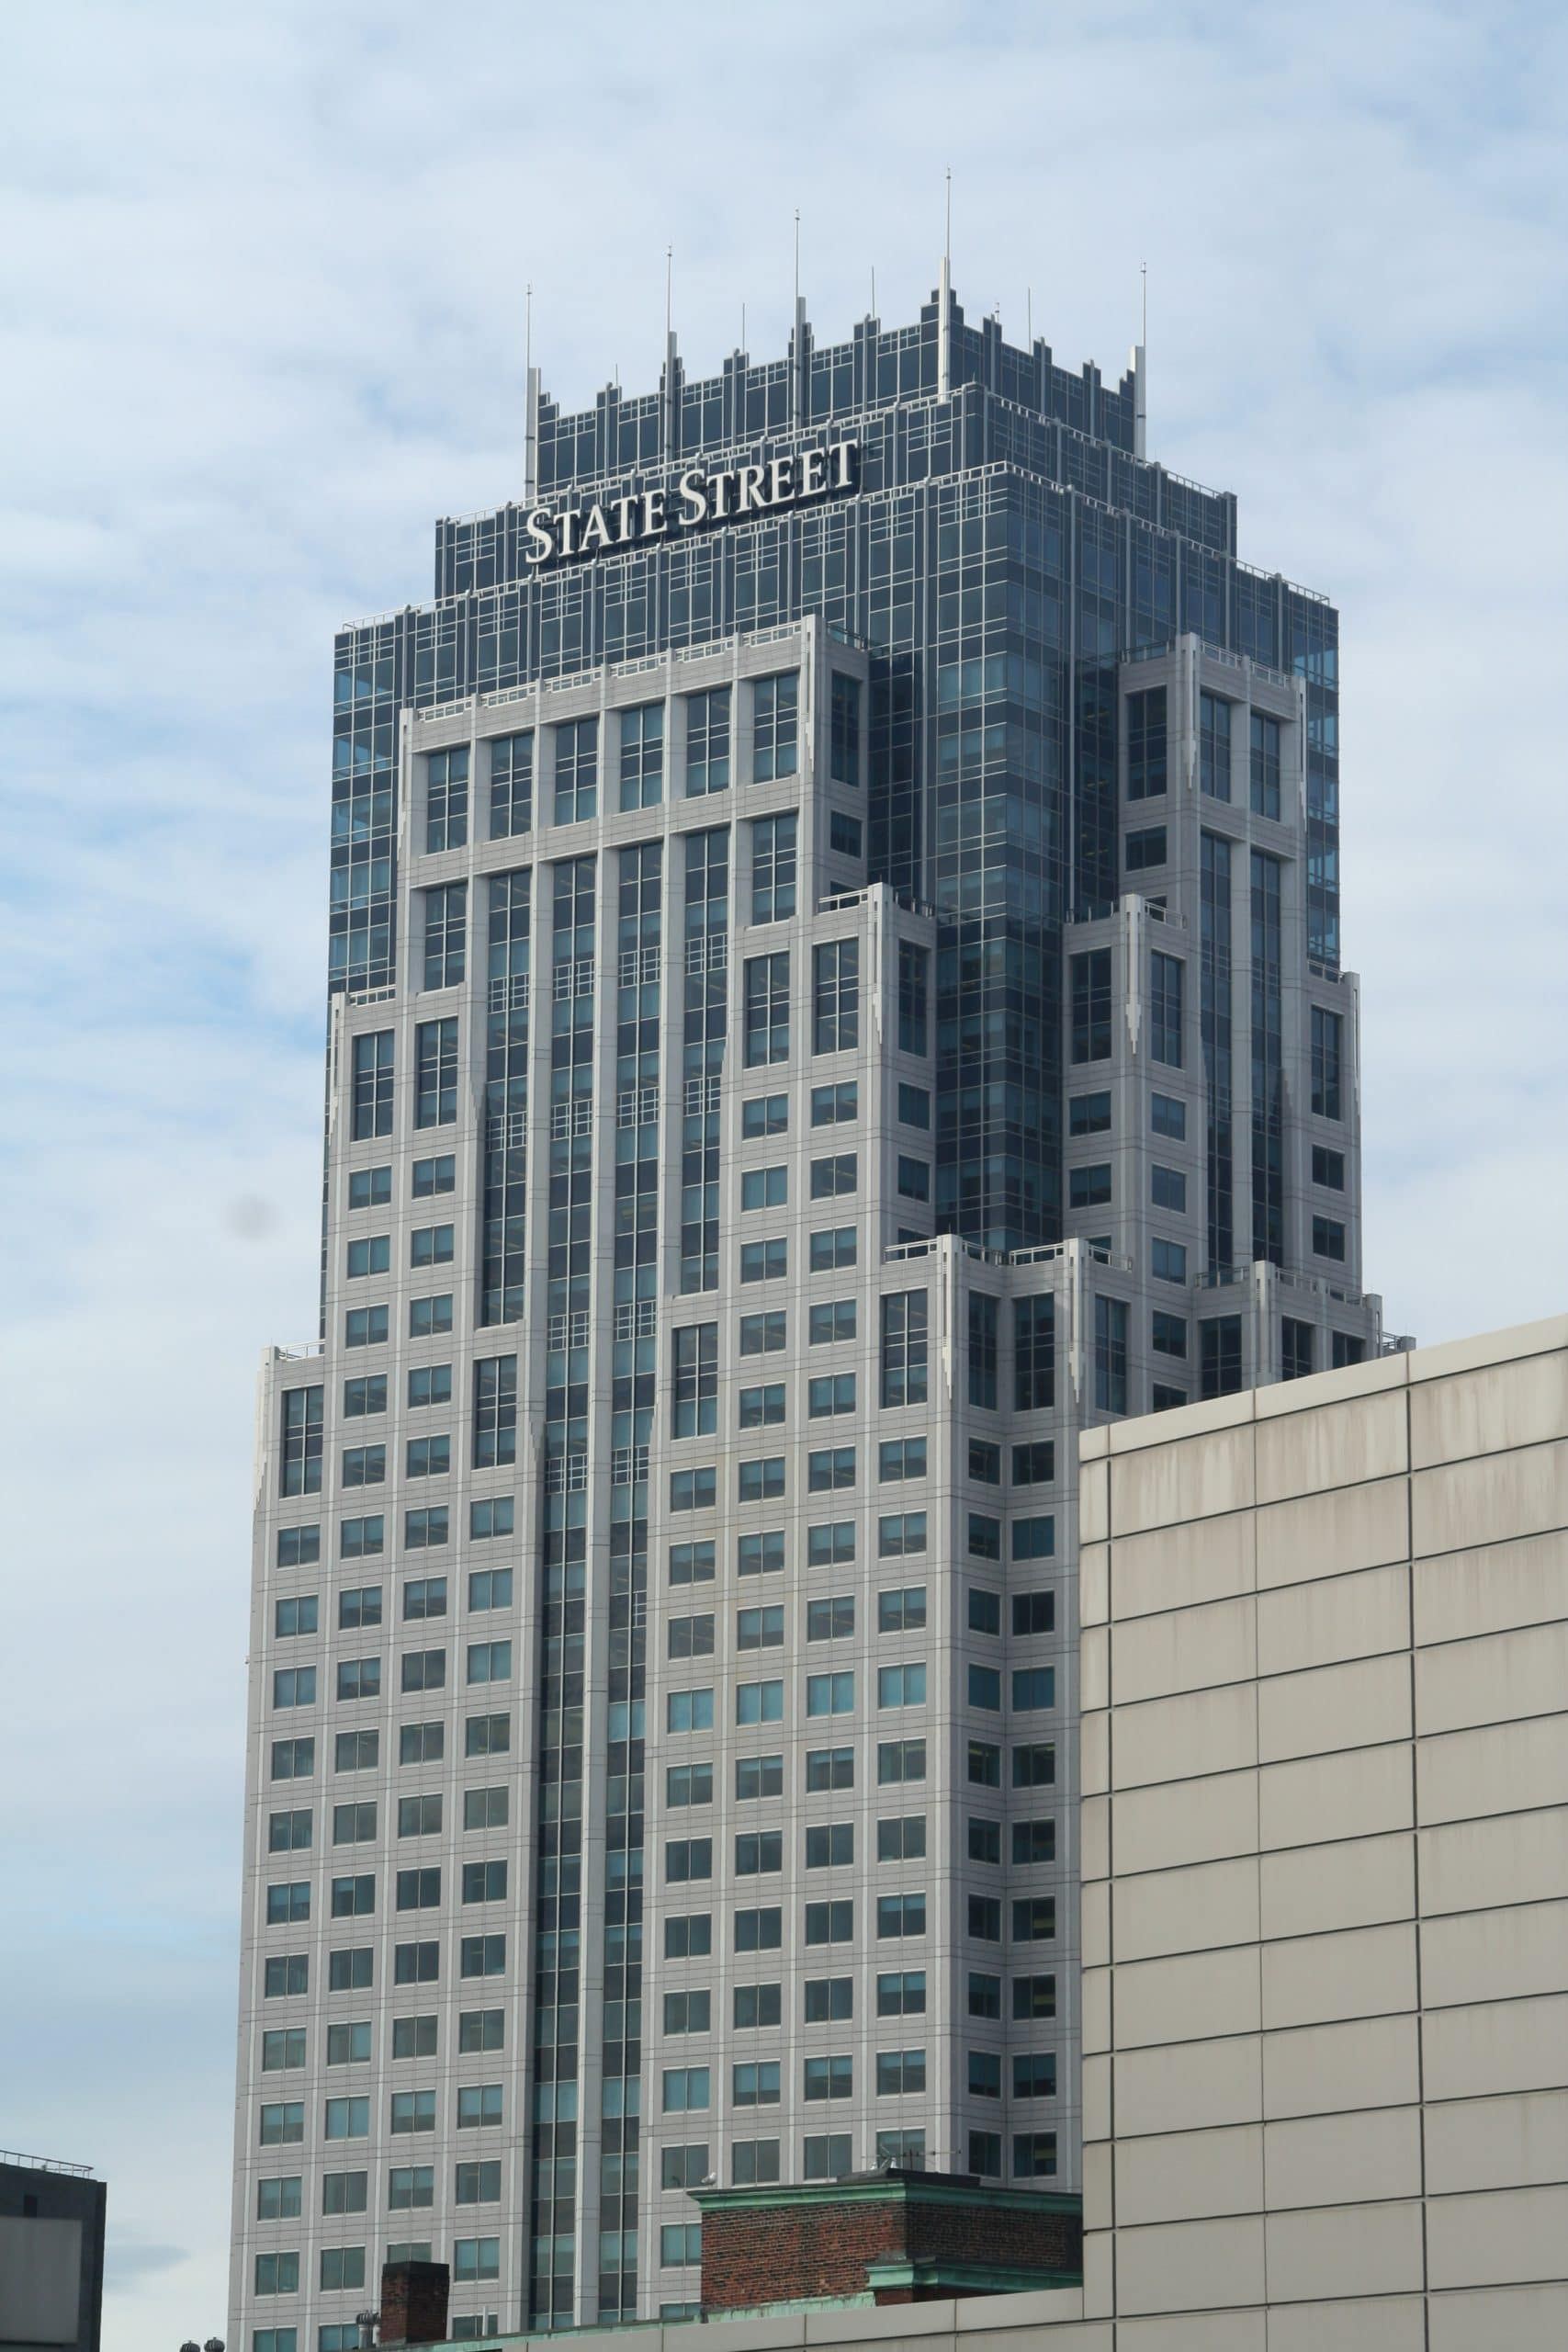 State Street Bank and Trust Company SWIFT Codes